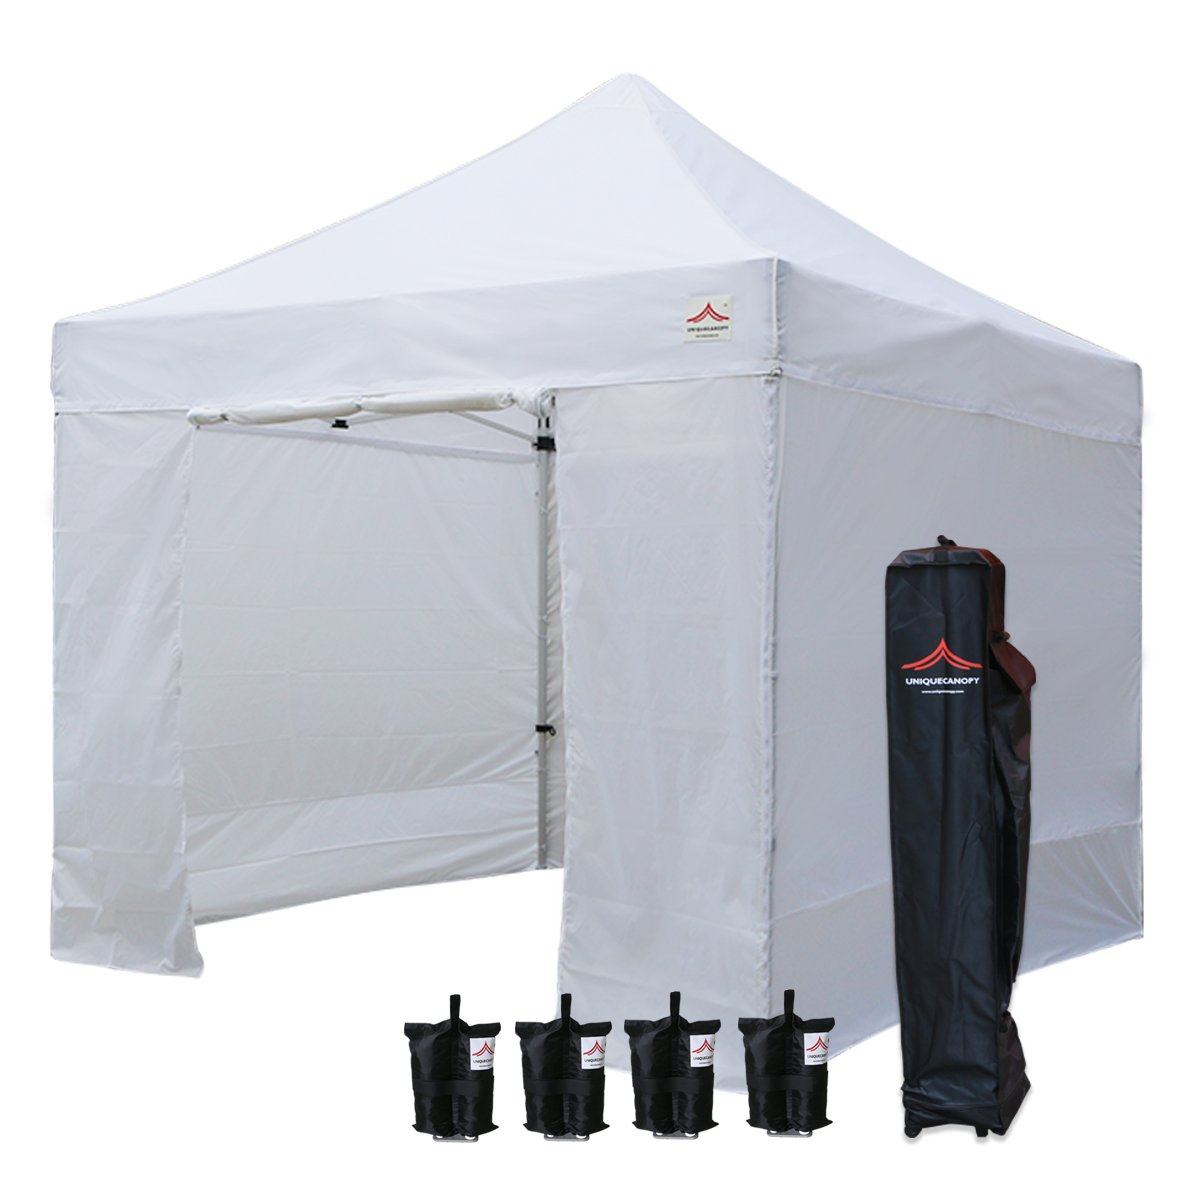 UNIQUECANOPY 10x10 Ez Pop up Canopy Tents for Parties Outdoor Portable Instant Folded Commercial Popup Shelter, with 4 Zippered Side Walls and Wheeled Carrying Bag Bonus 4 Sandbags White